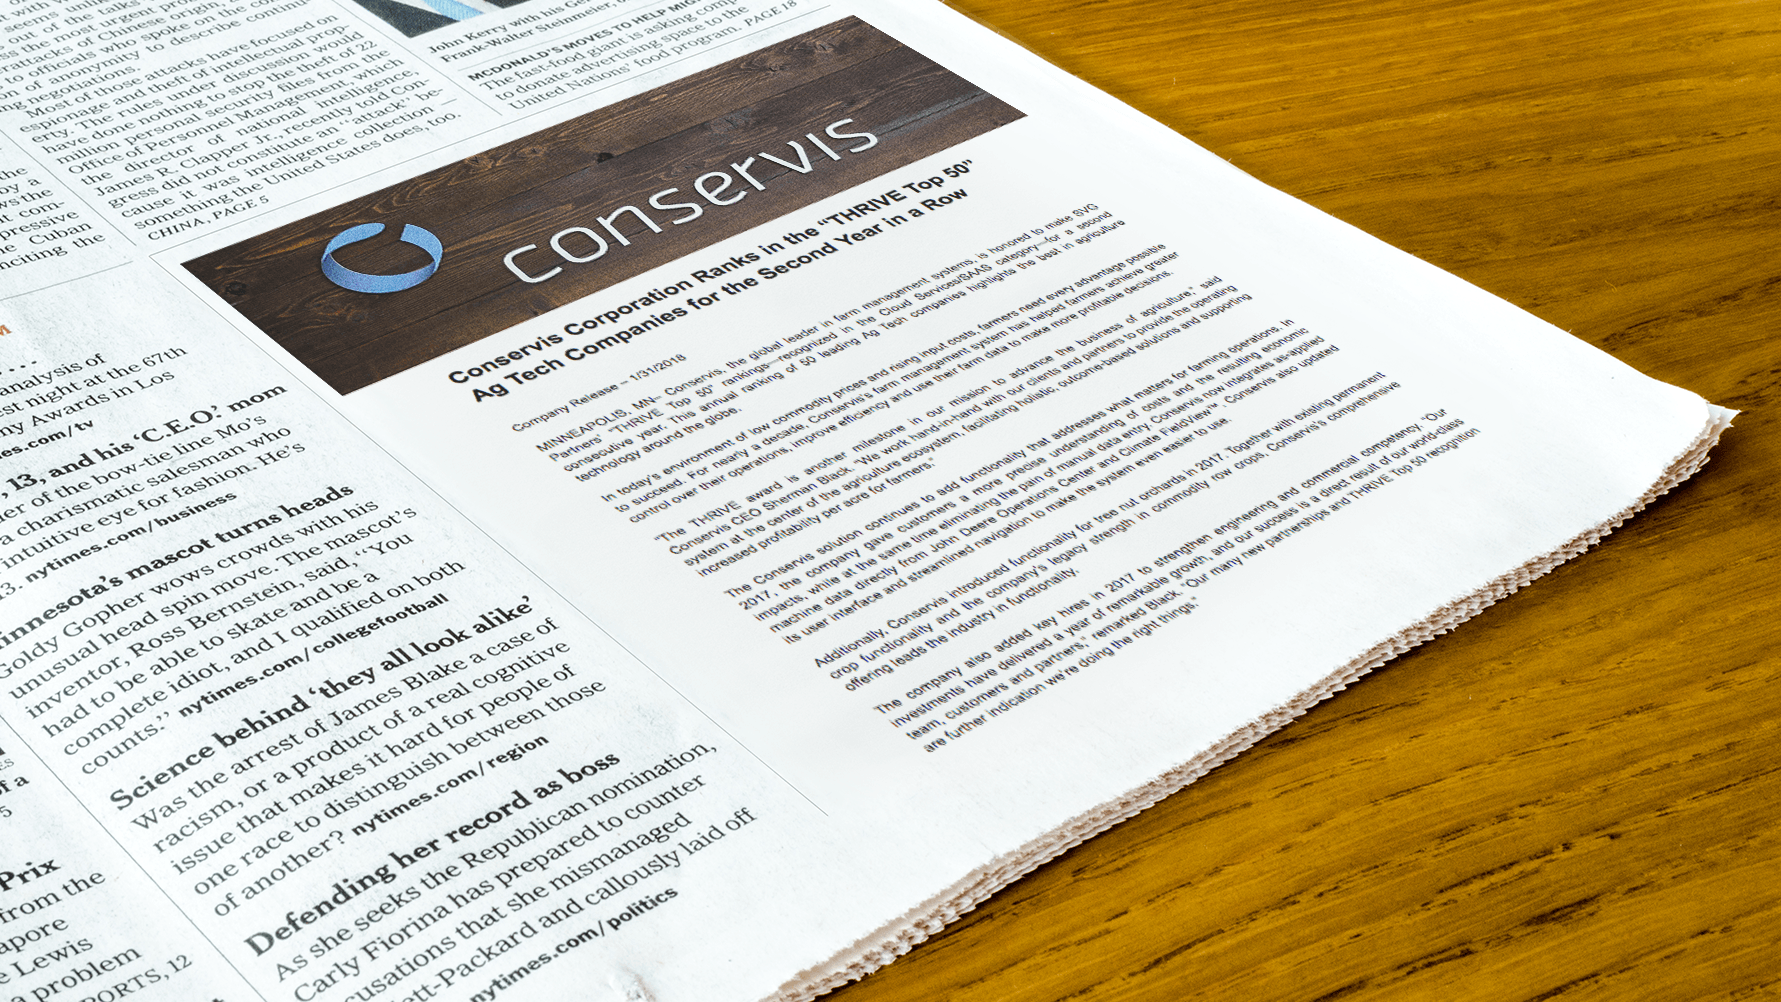 Conservis News and Blog Page